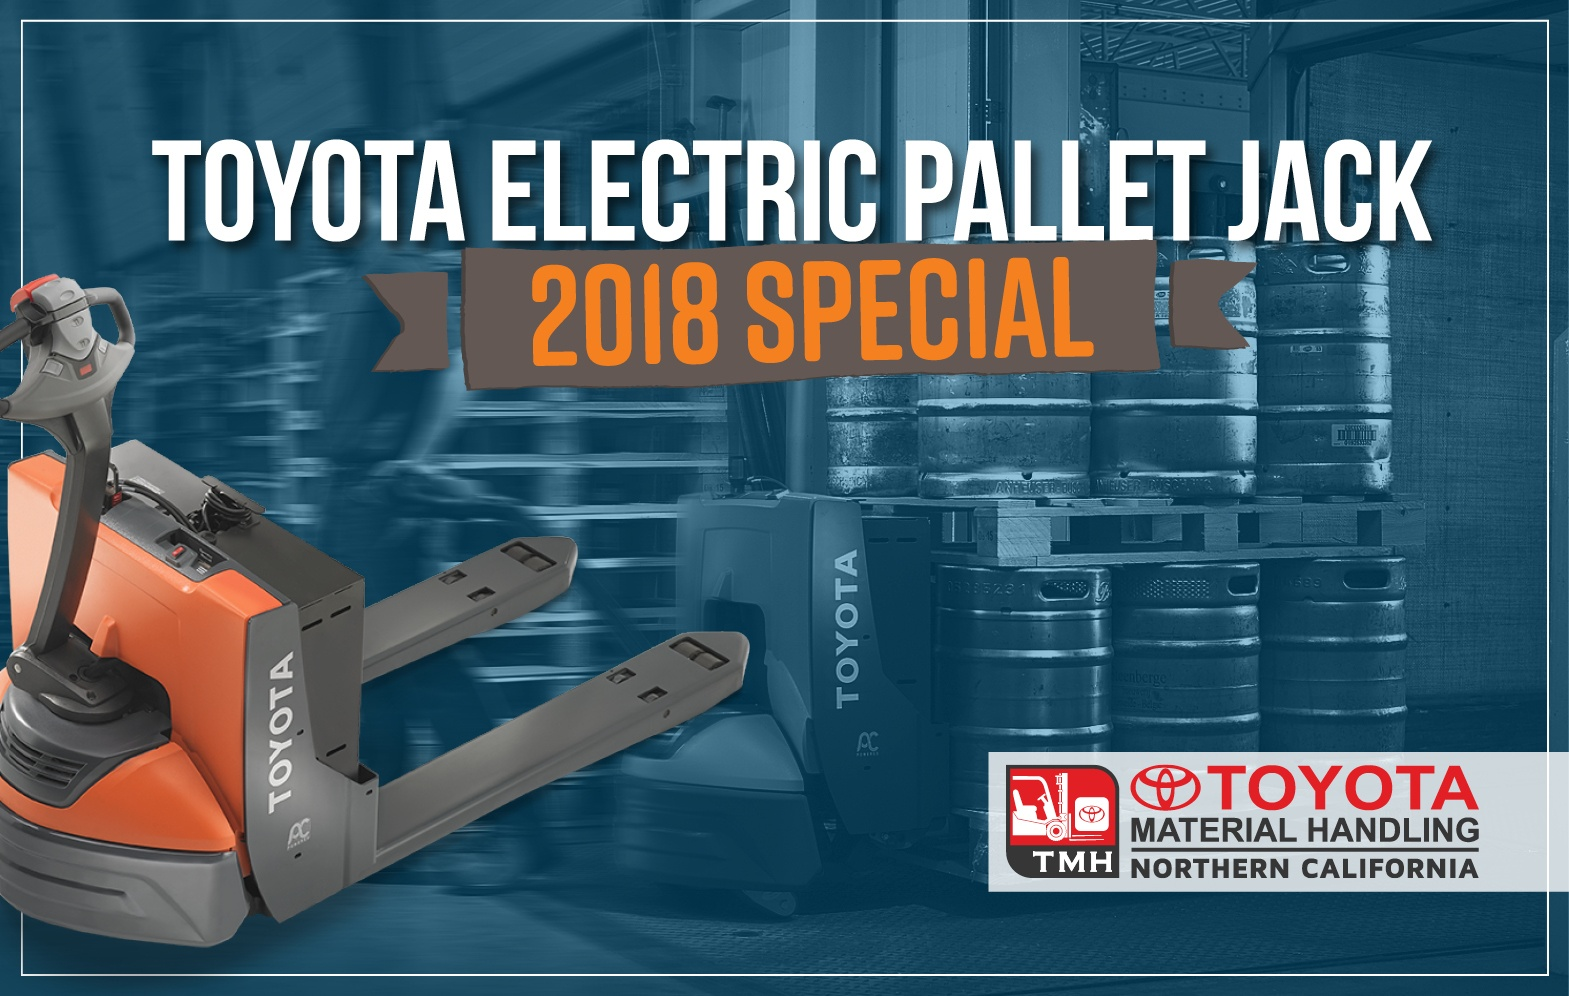 Toyota Electric Pallet Jack 2018 Special